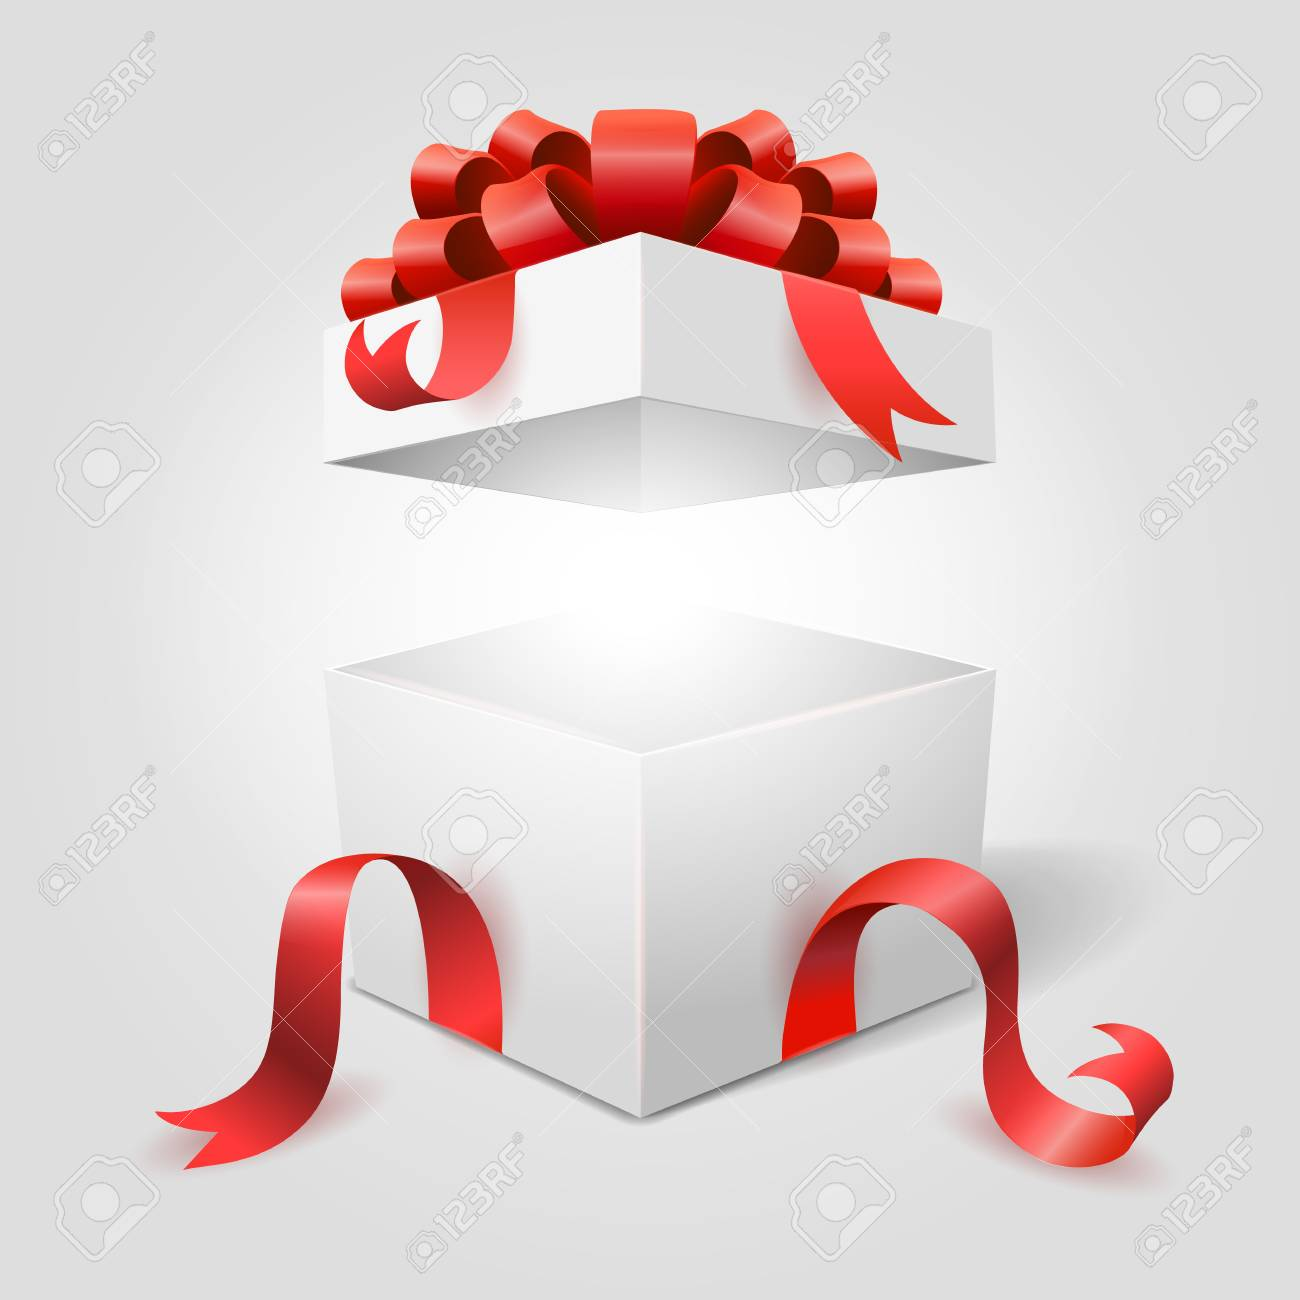 Surprise Box Open Clip Art Wiring Diagrams Green Usb Switch Circuit Diagram Projects Nonstopfree Gift White With Red Ribbon For Christmas Rh 123rf Com